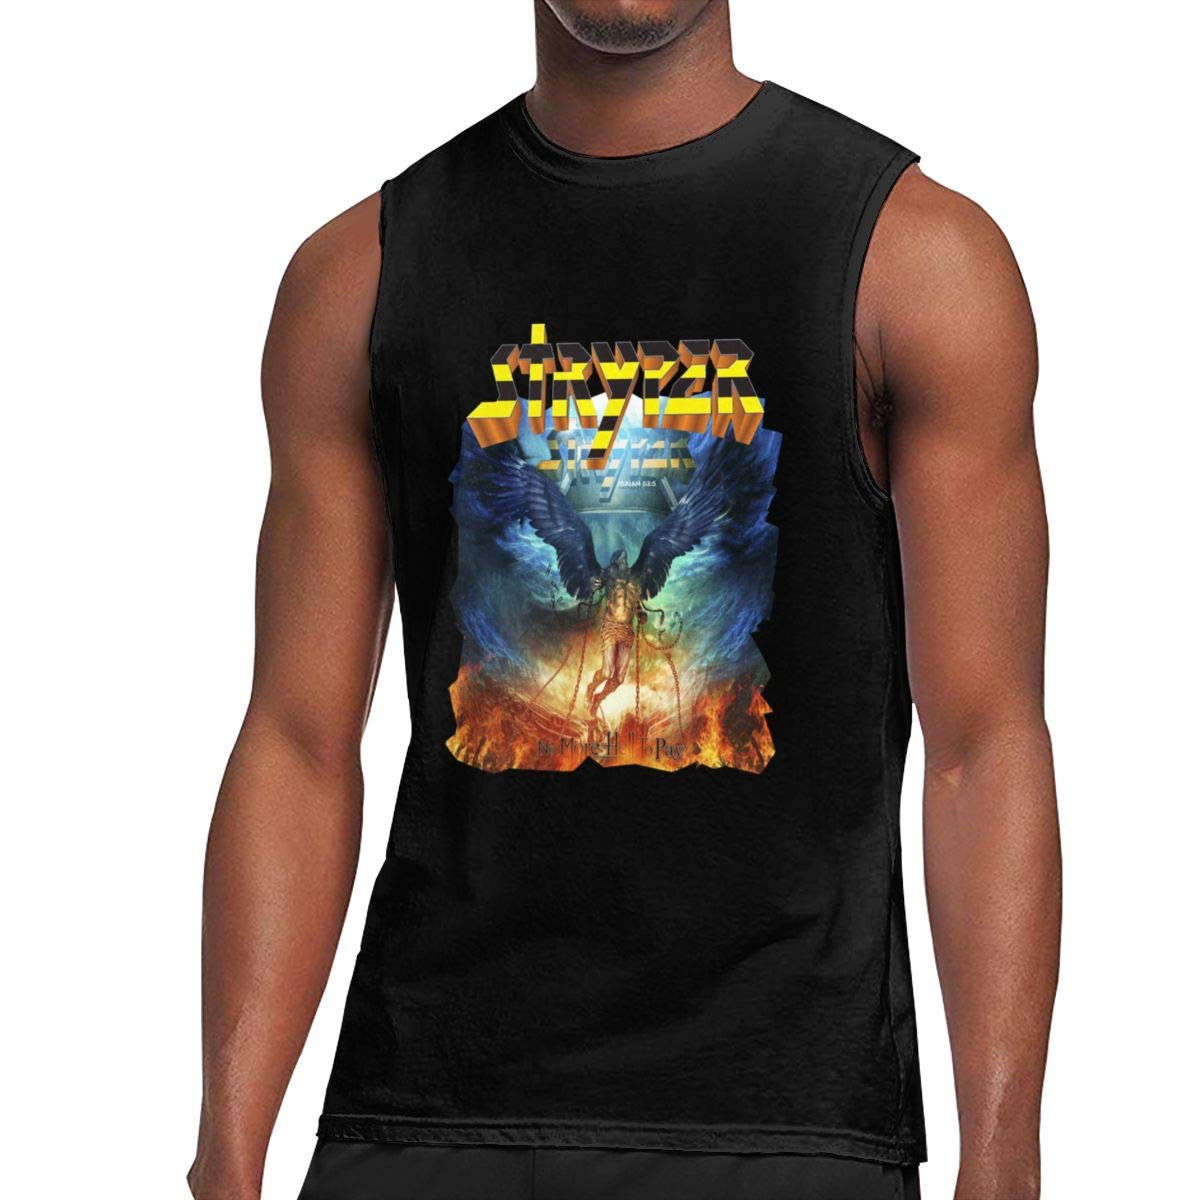 Seuriamin Stryper No More Hell To Pay S Basic Athletic Sleeveless Muscle Short Sleeve Ts S